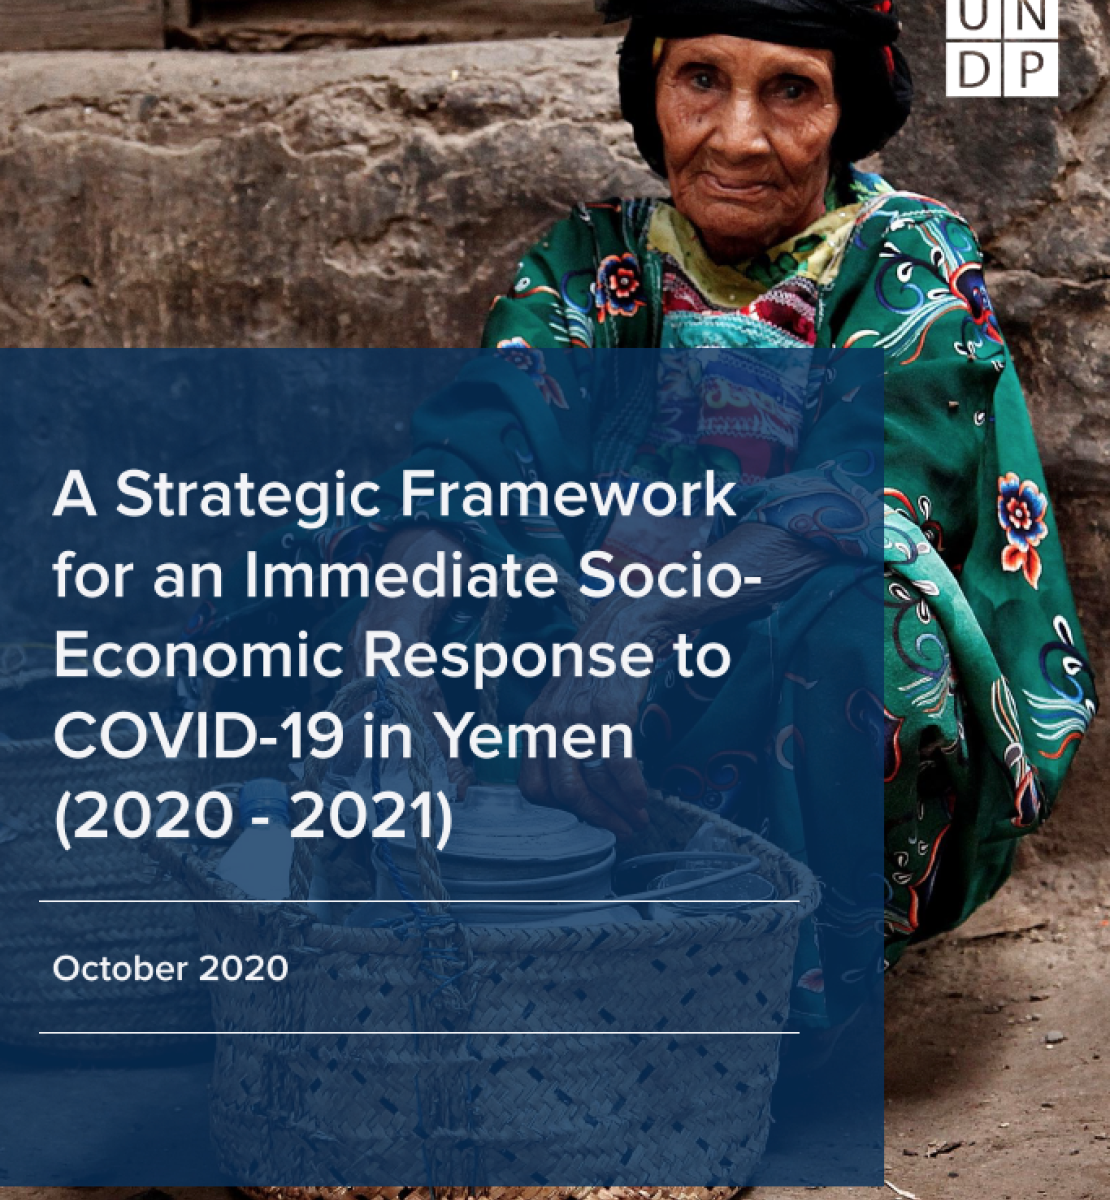 The cover shows an image of an elderly woman crouched on the ground hand-washing dishes, with the title of the report within a dark square overlay in front of the image.